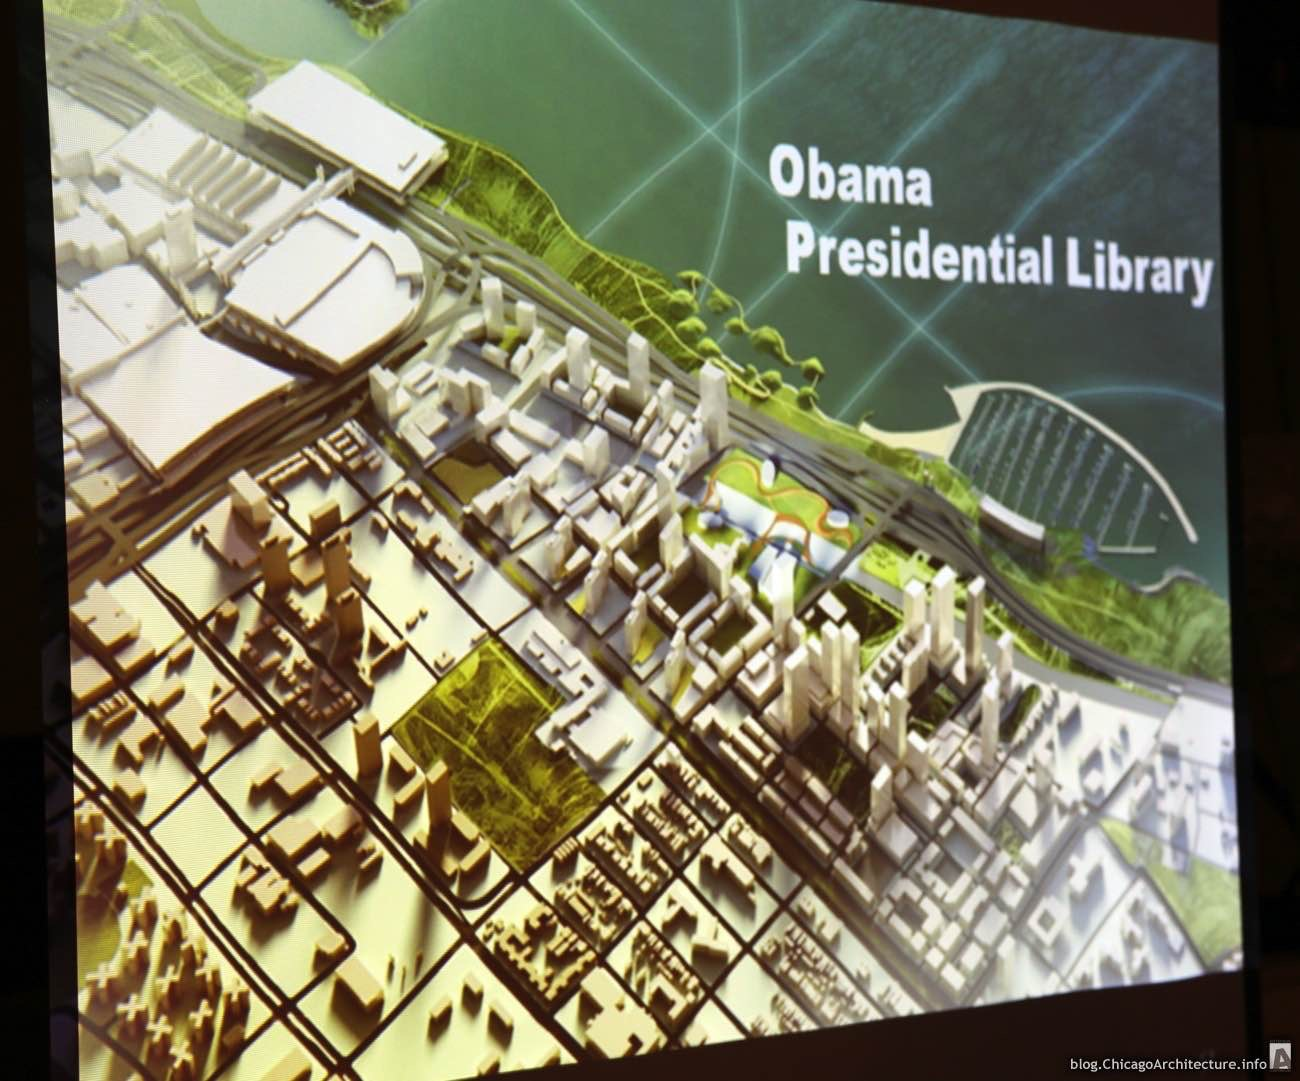 An early proposal for the Obama Presidential Center that won't become reality